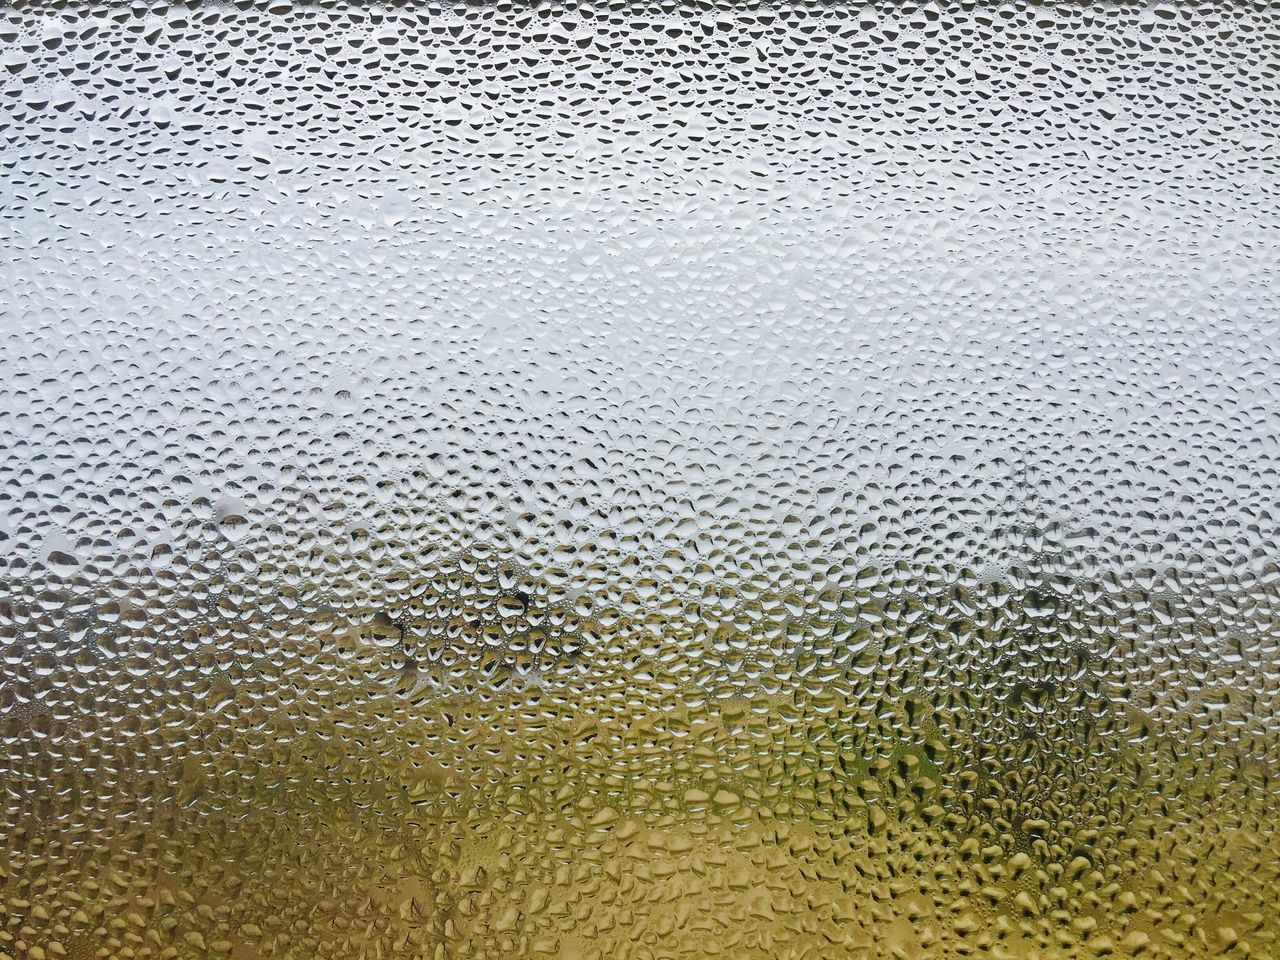 Day Close-up No People Indoors  Water Reflection Window Window View Dew Dew Drops Dewdrops_Beauty